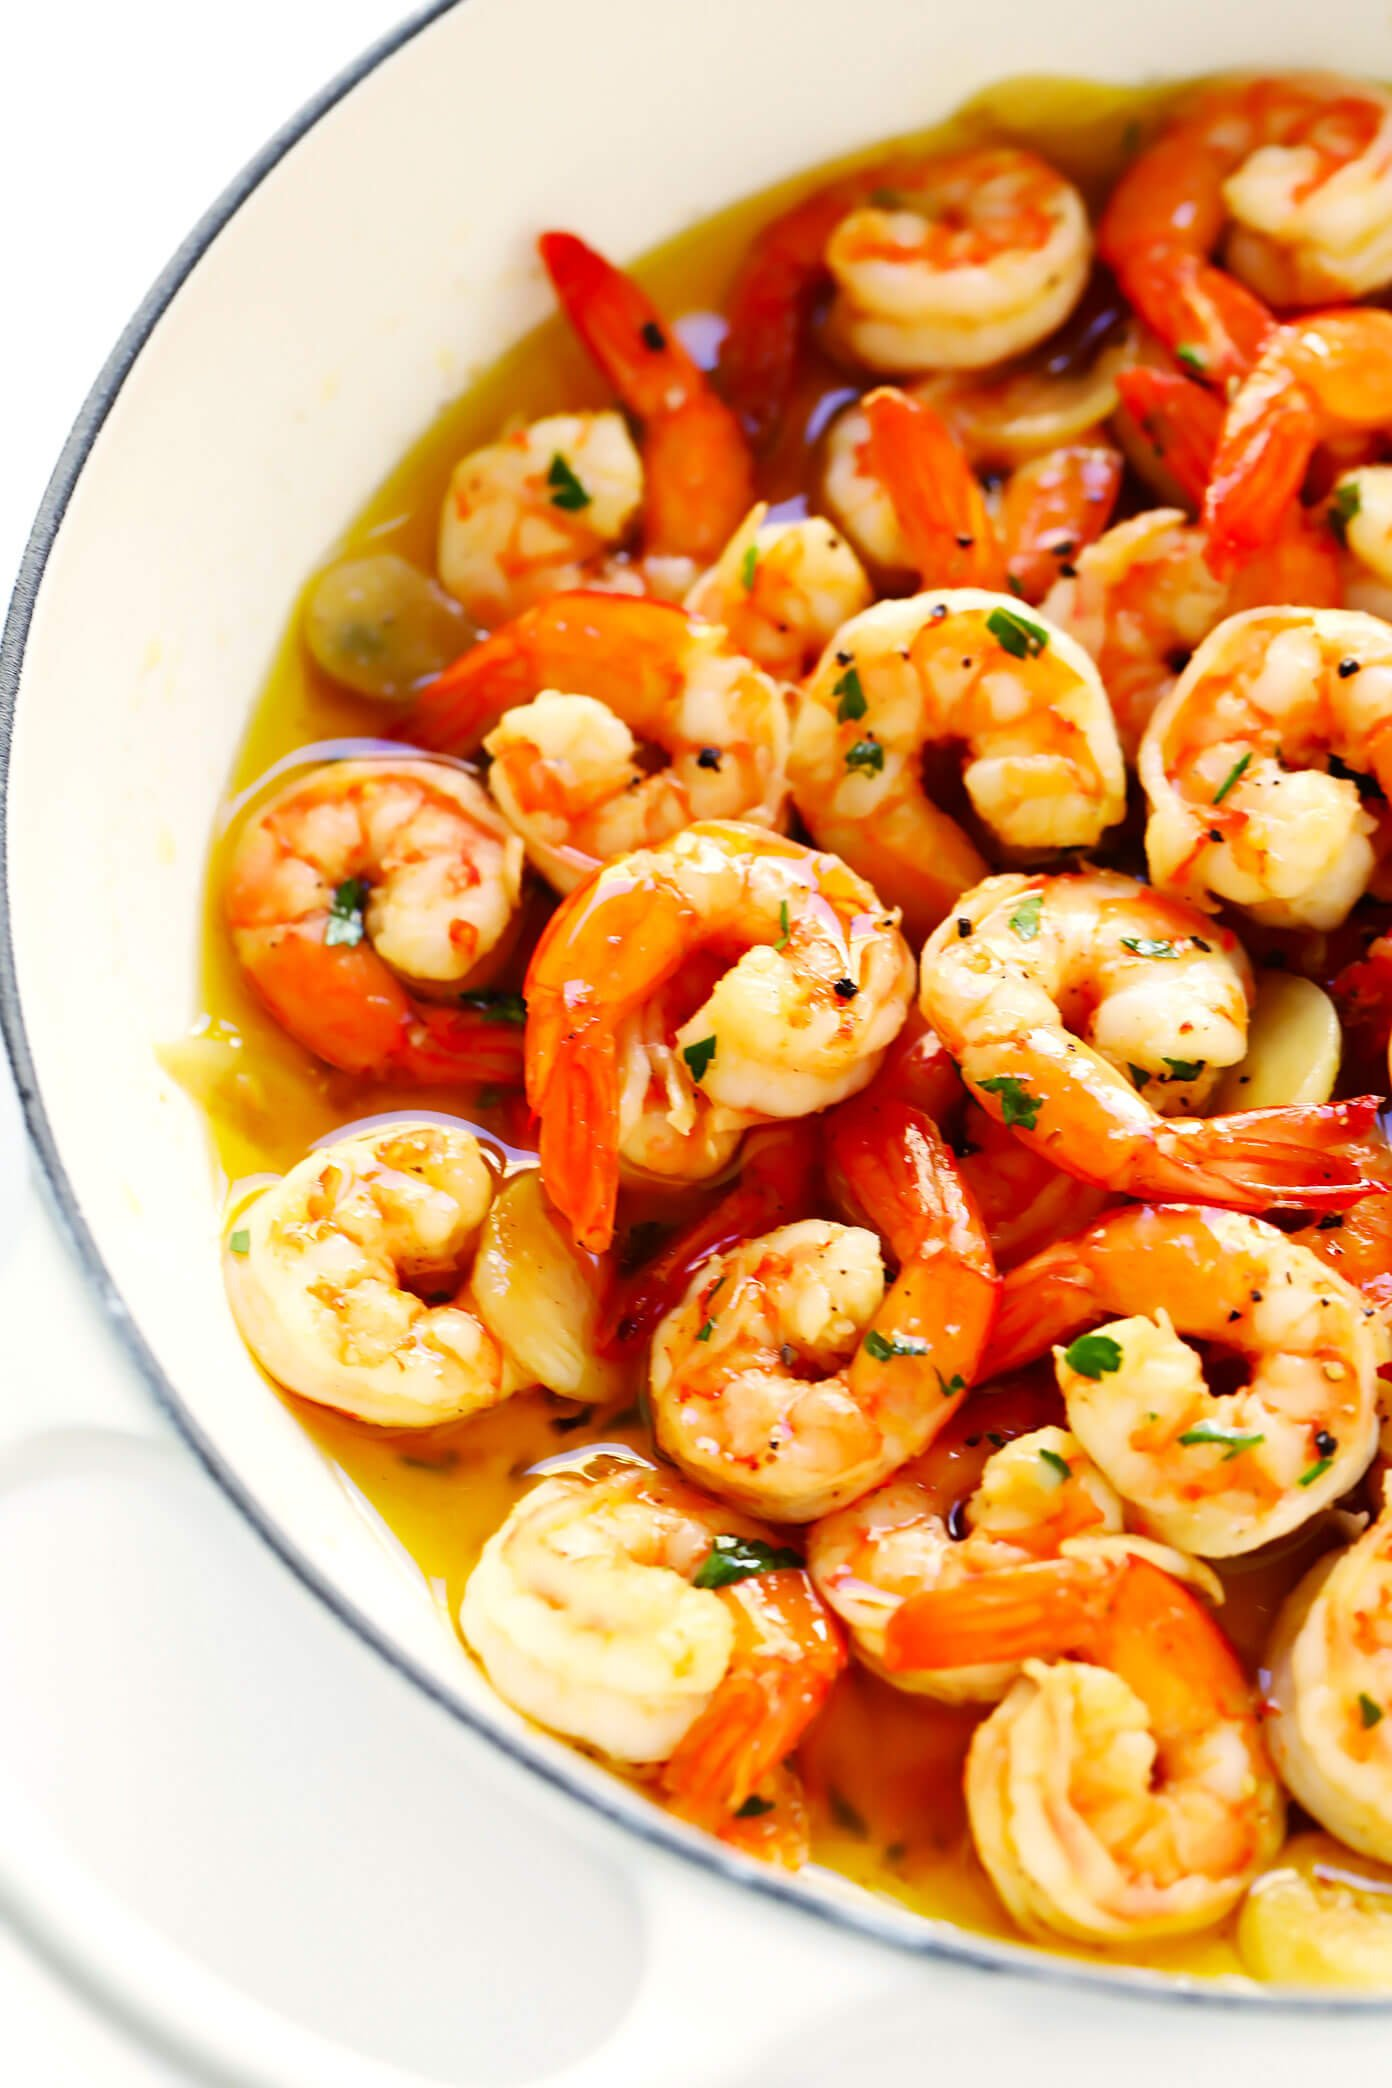 Gambas Al Ajillo (Spanish Garlic Shrimp) Recipe